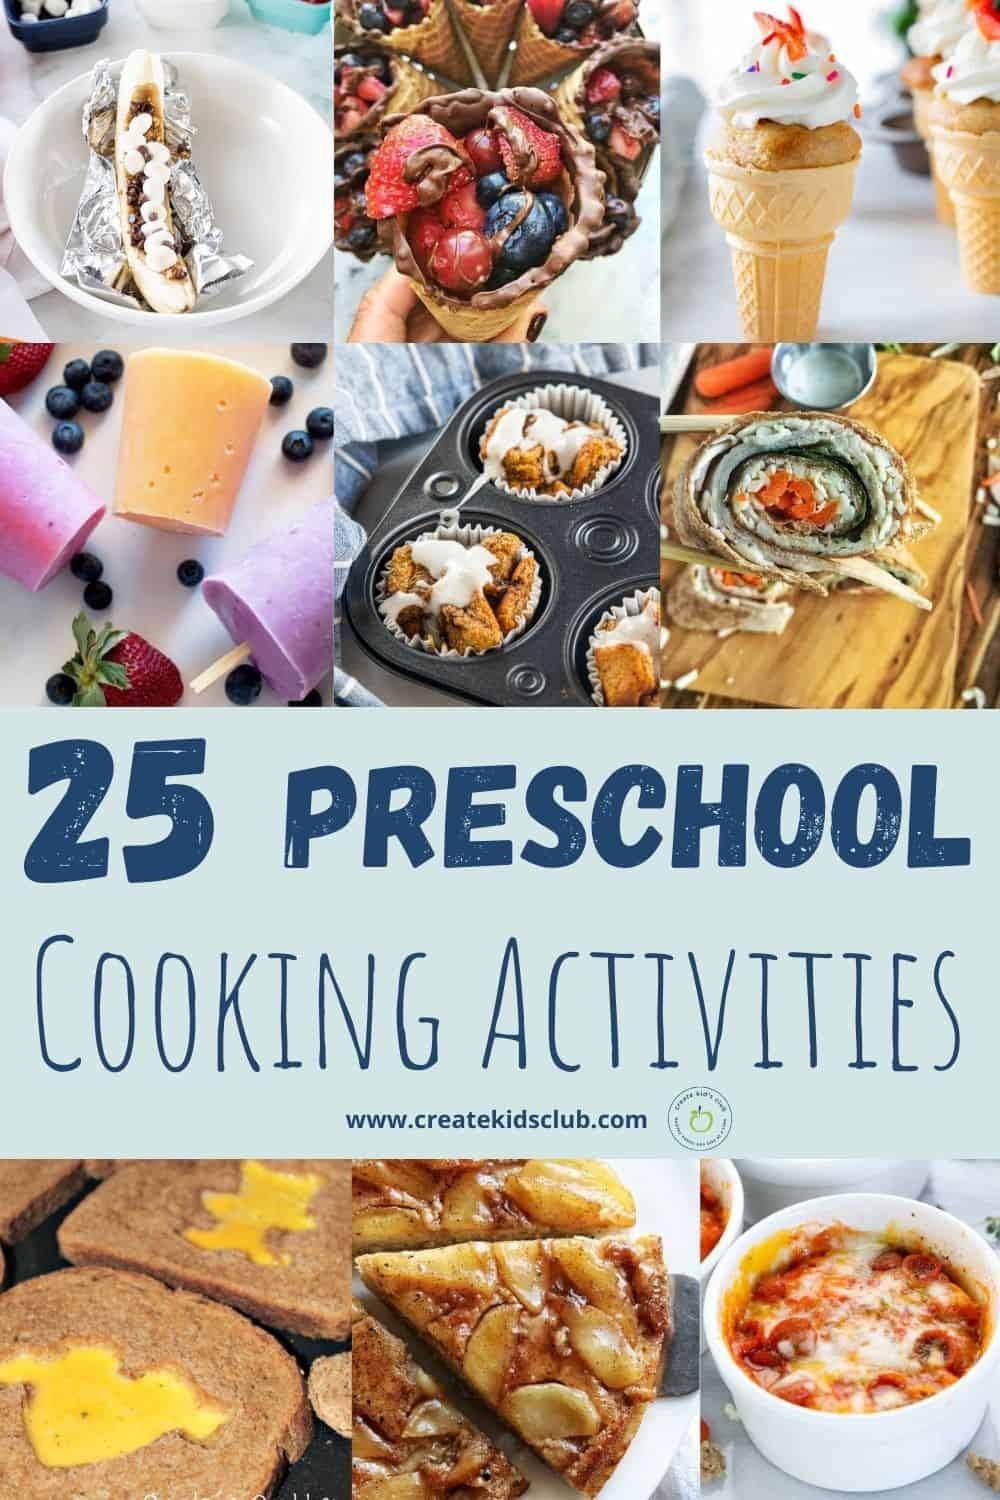 A variety of preschool cooking recipes.